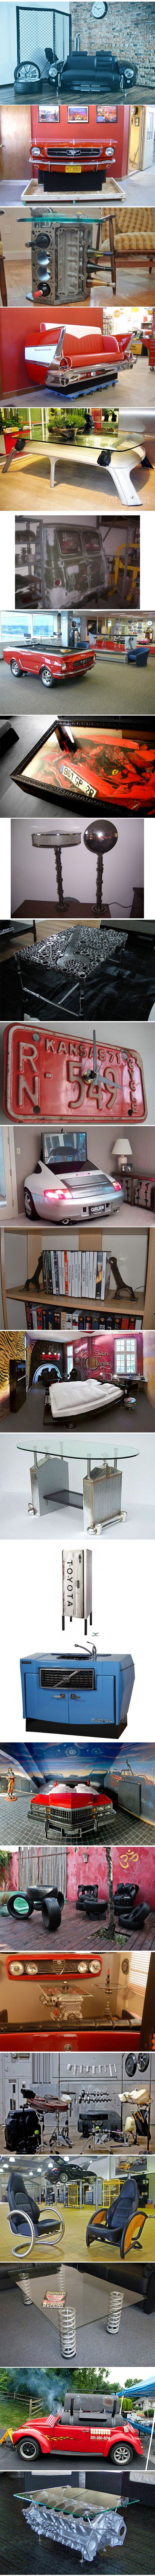 25 Creative Examples of Furniture Made From Car Parts | Mommy Has A Potty MouthMommy Has A Potty Mouth